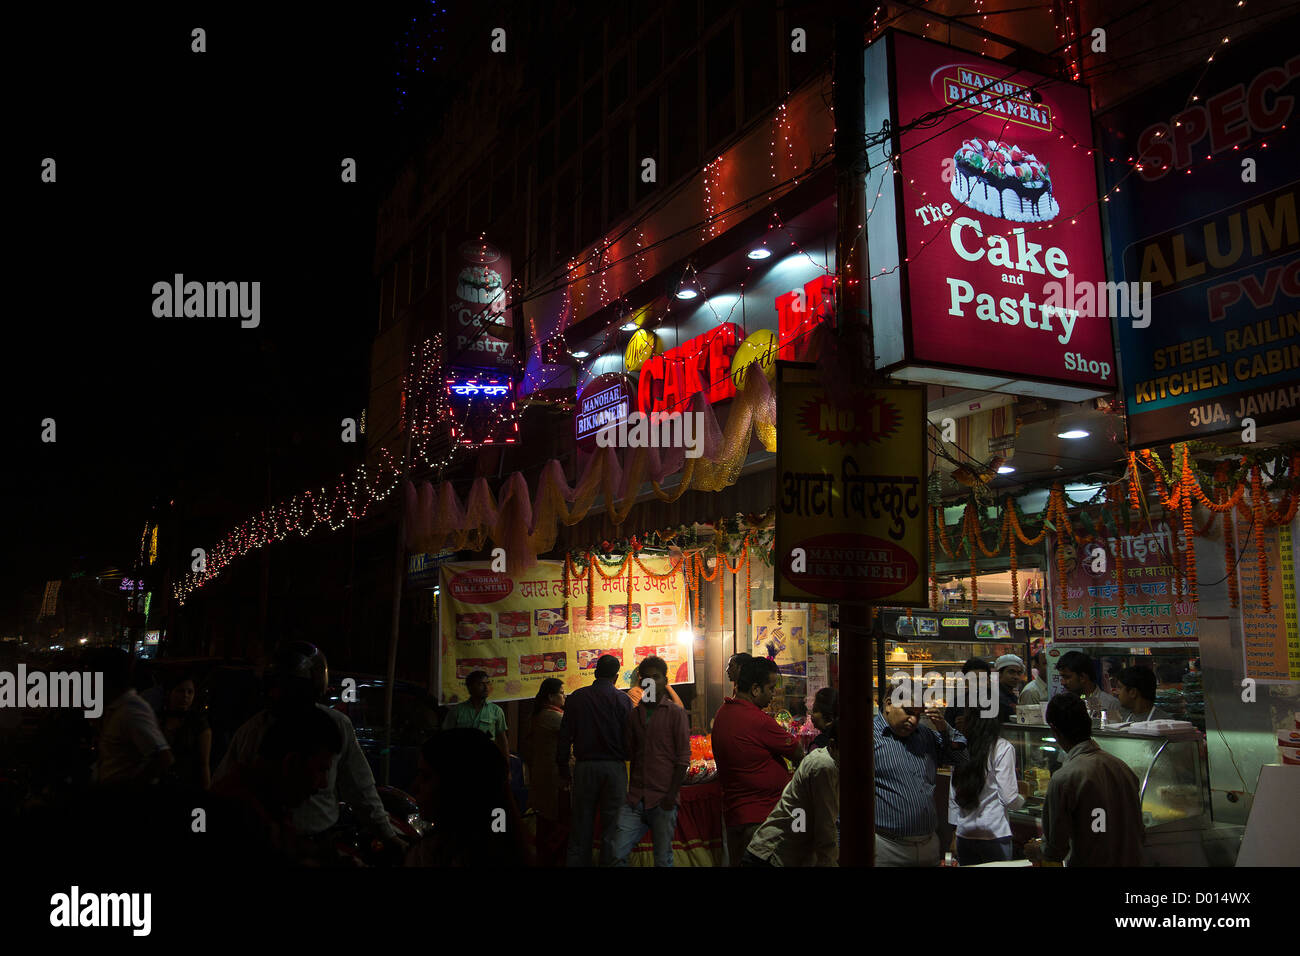 Kamla Nagar Market Old Delhi Business Commercial Hub Center Shops Showrooms Vendors Night Scene Crowd - Stock Image